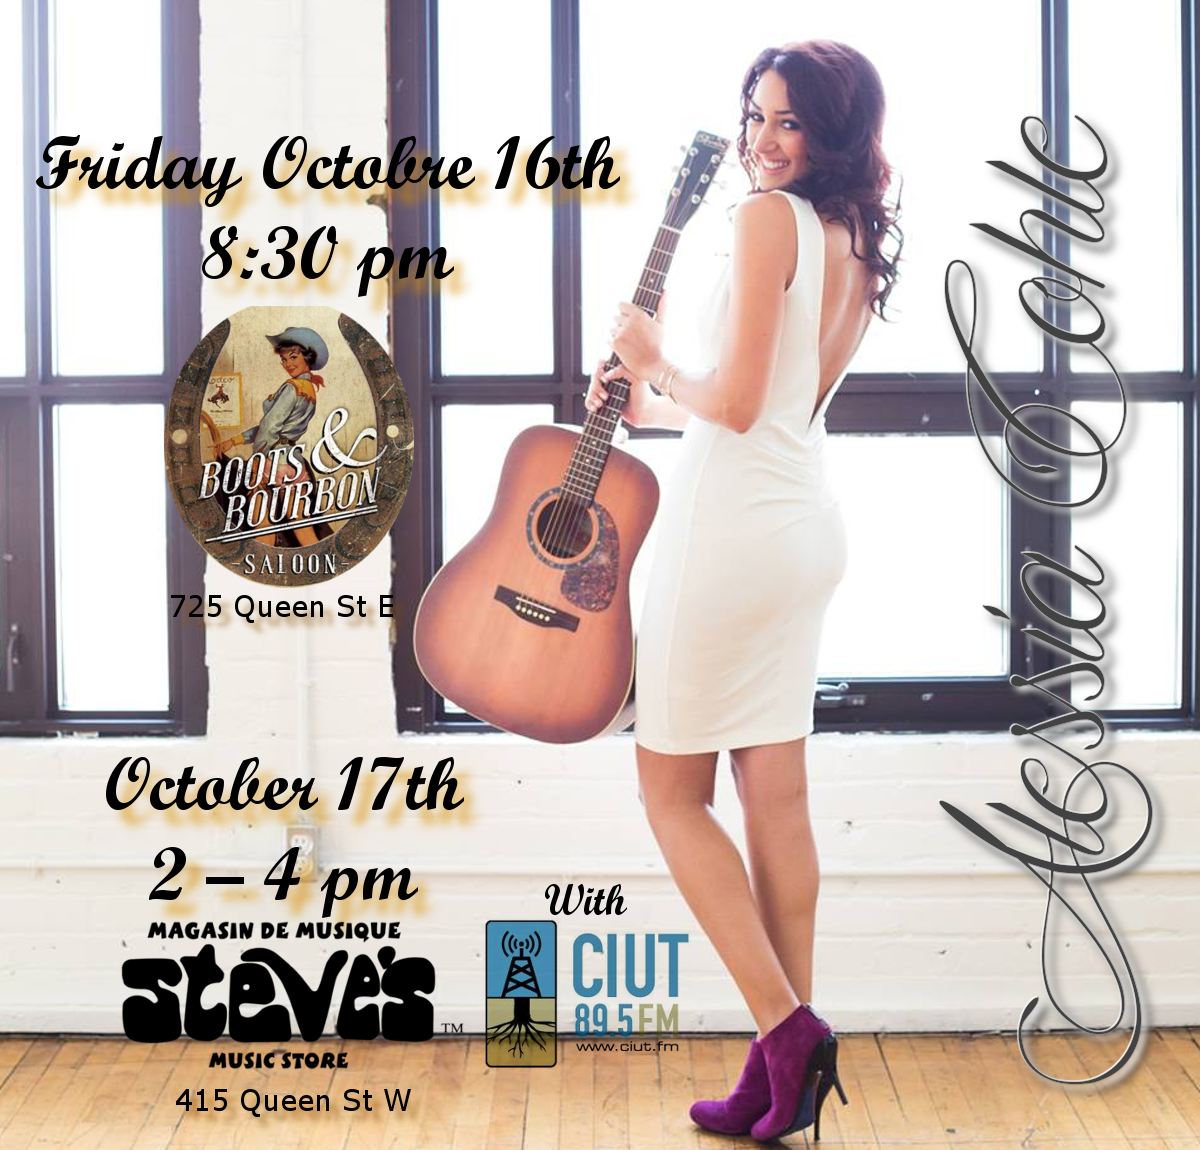 Alessia Cohle - October concerts in Toronto